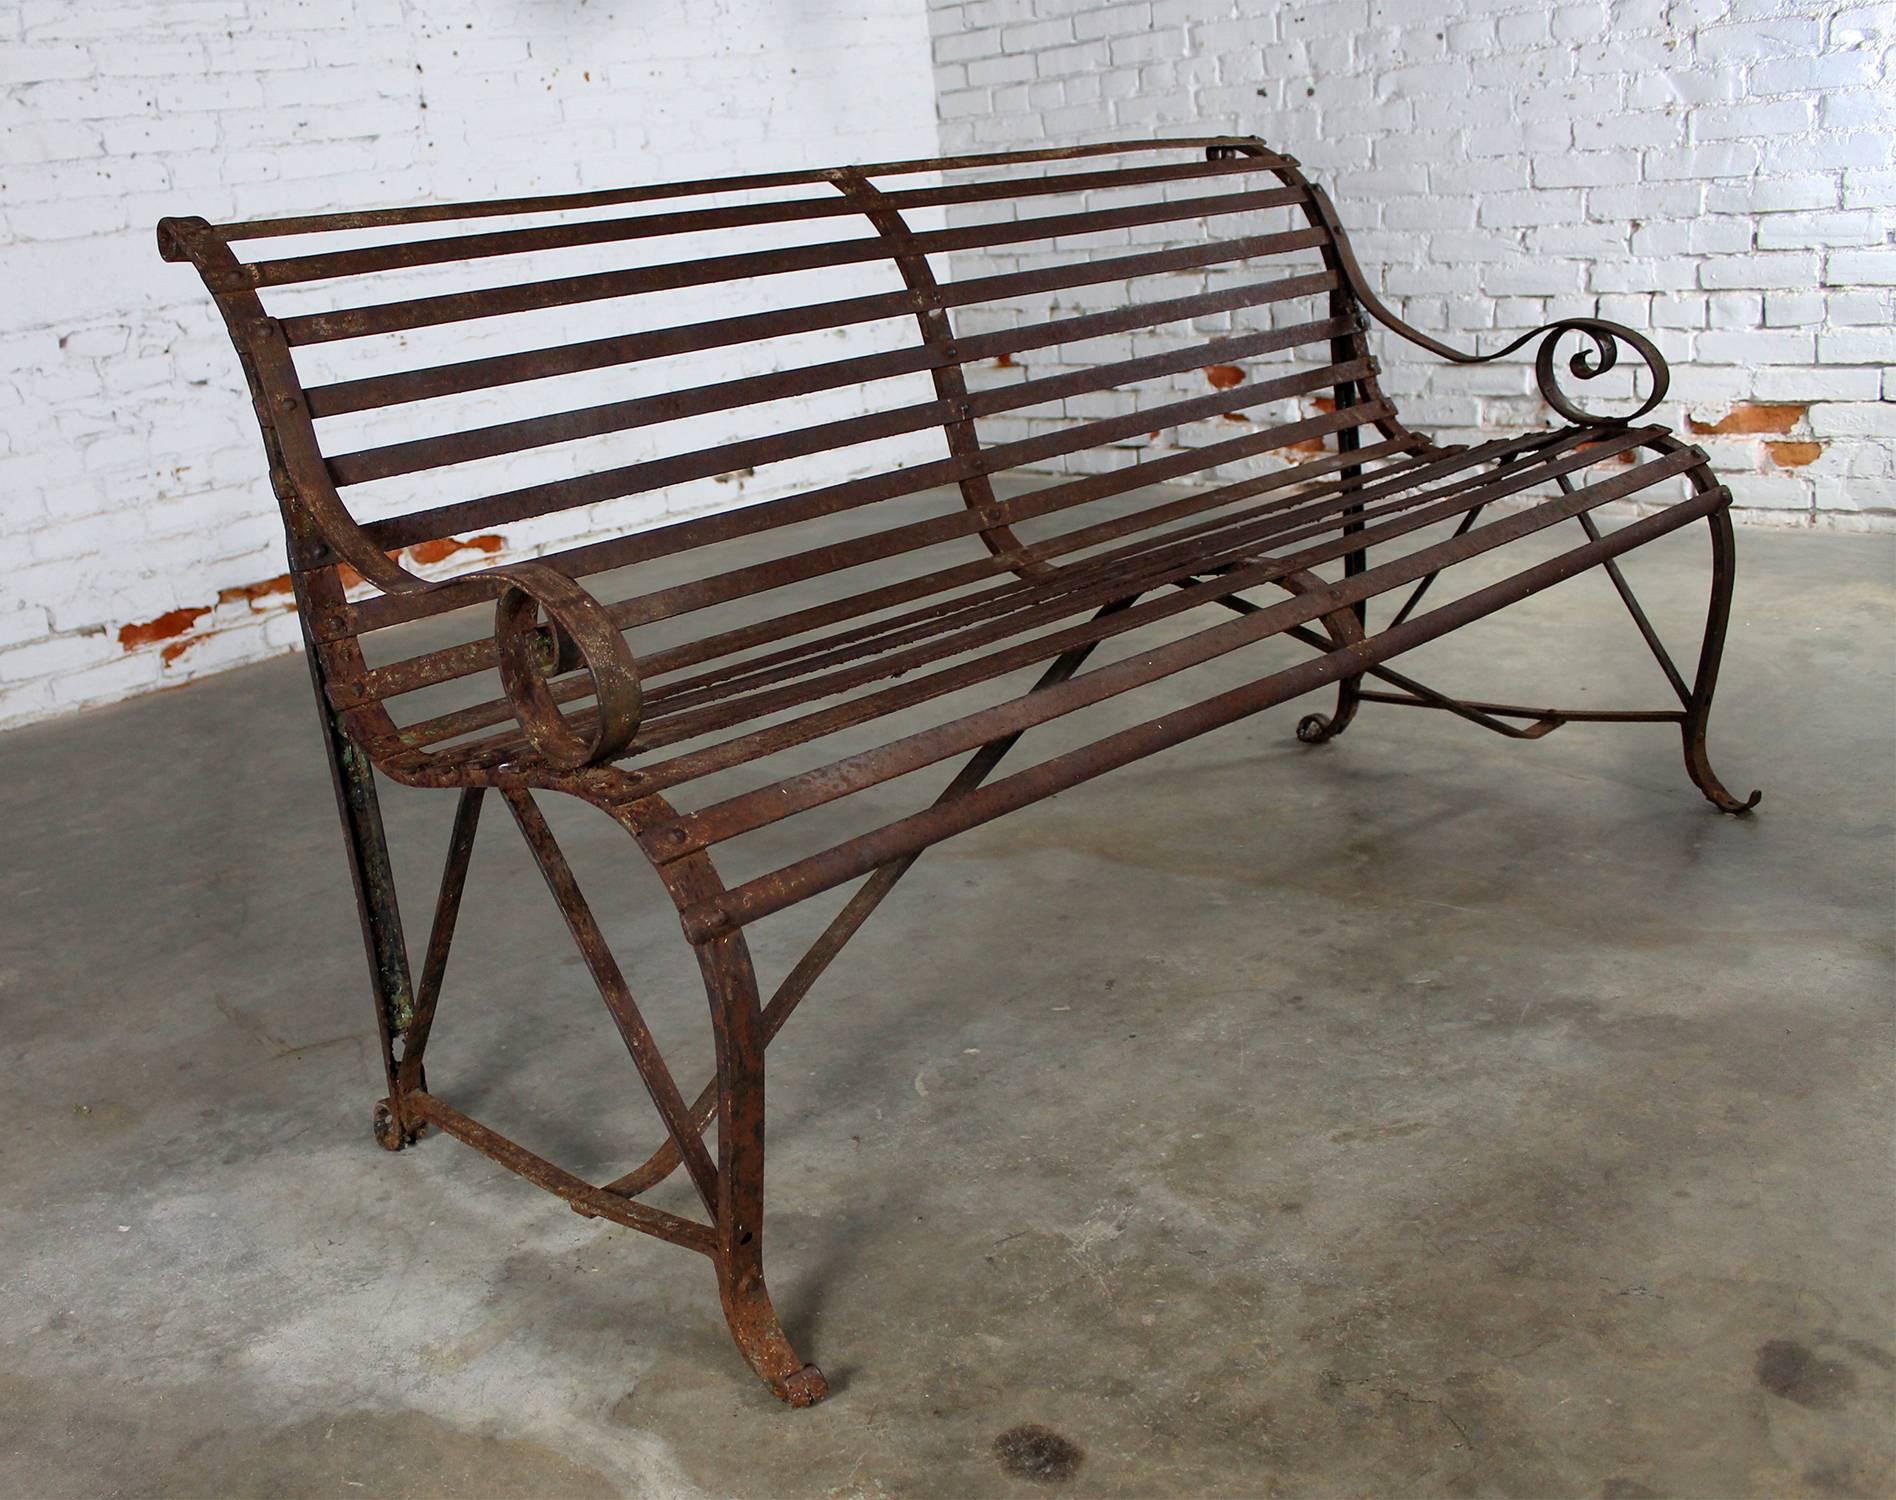 garden iron view design wrought image rustic french product bench larger rose